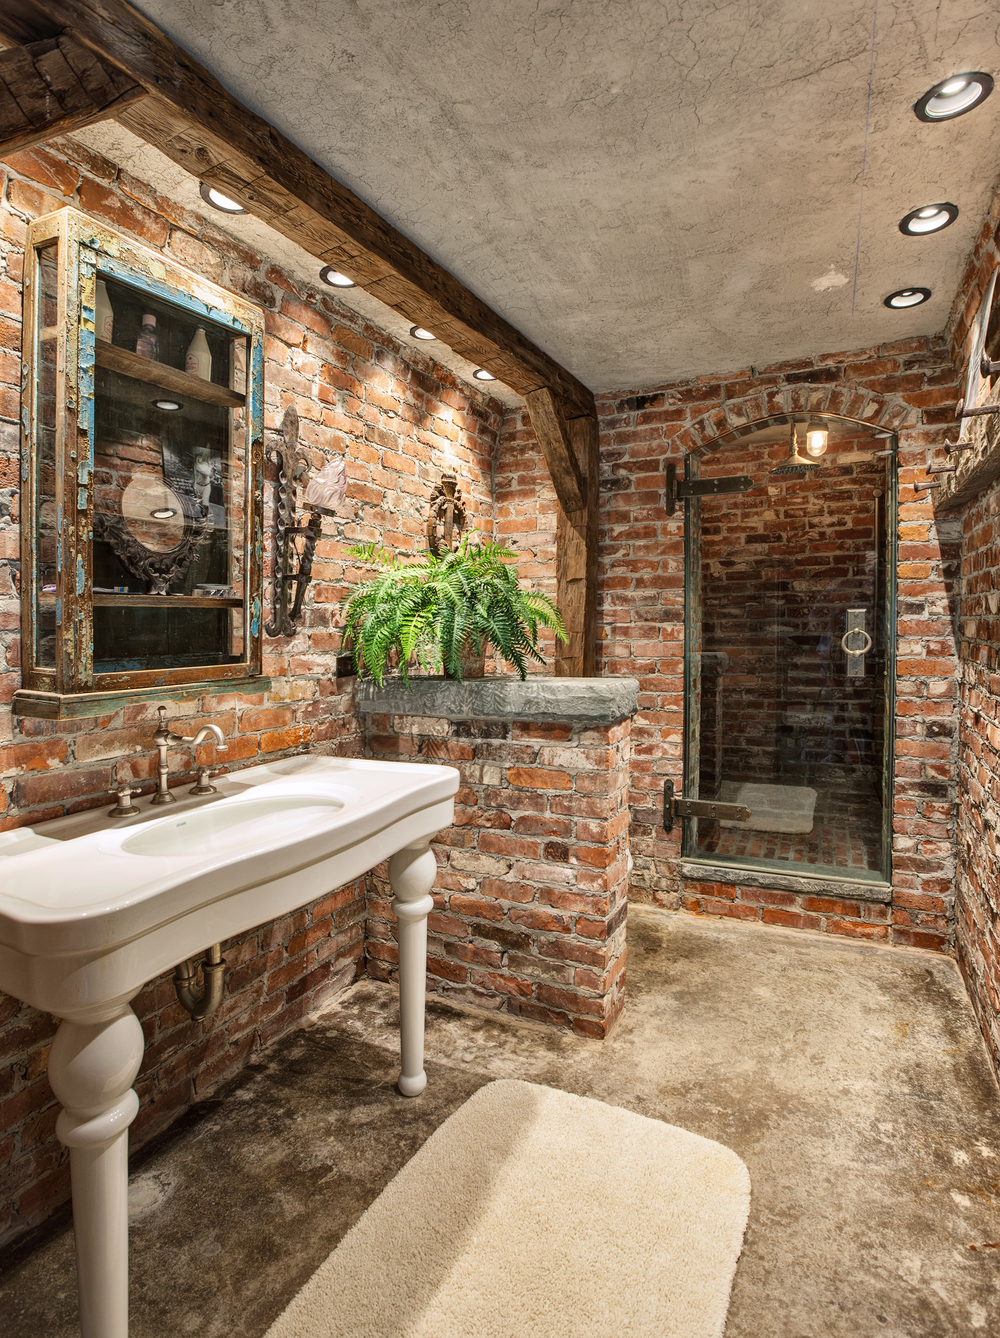 One of the home's eight bathrooms.